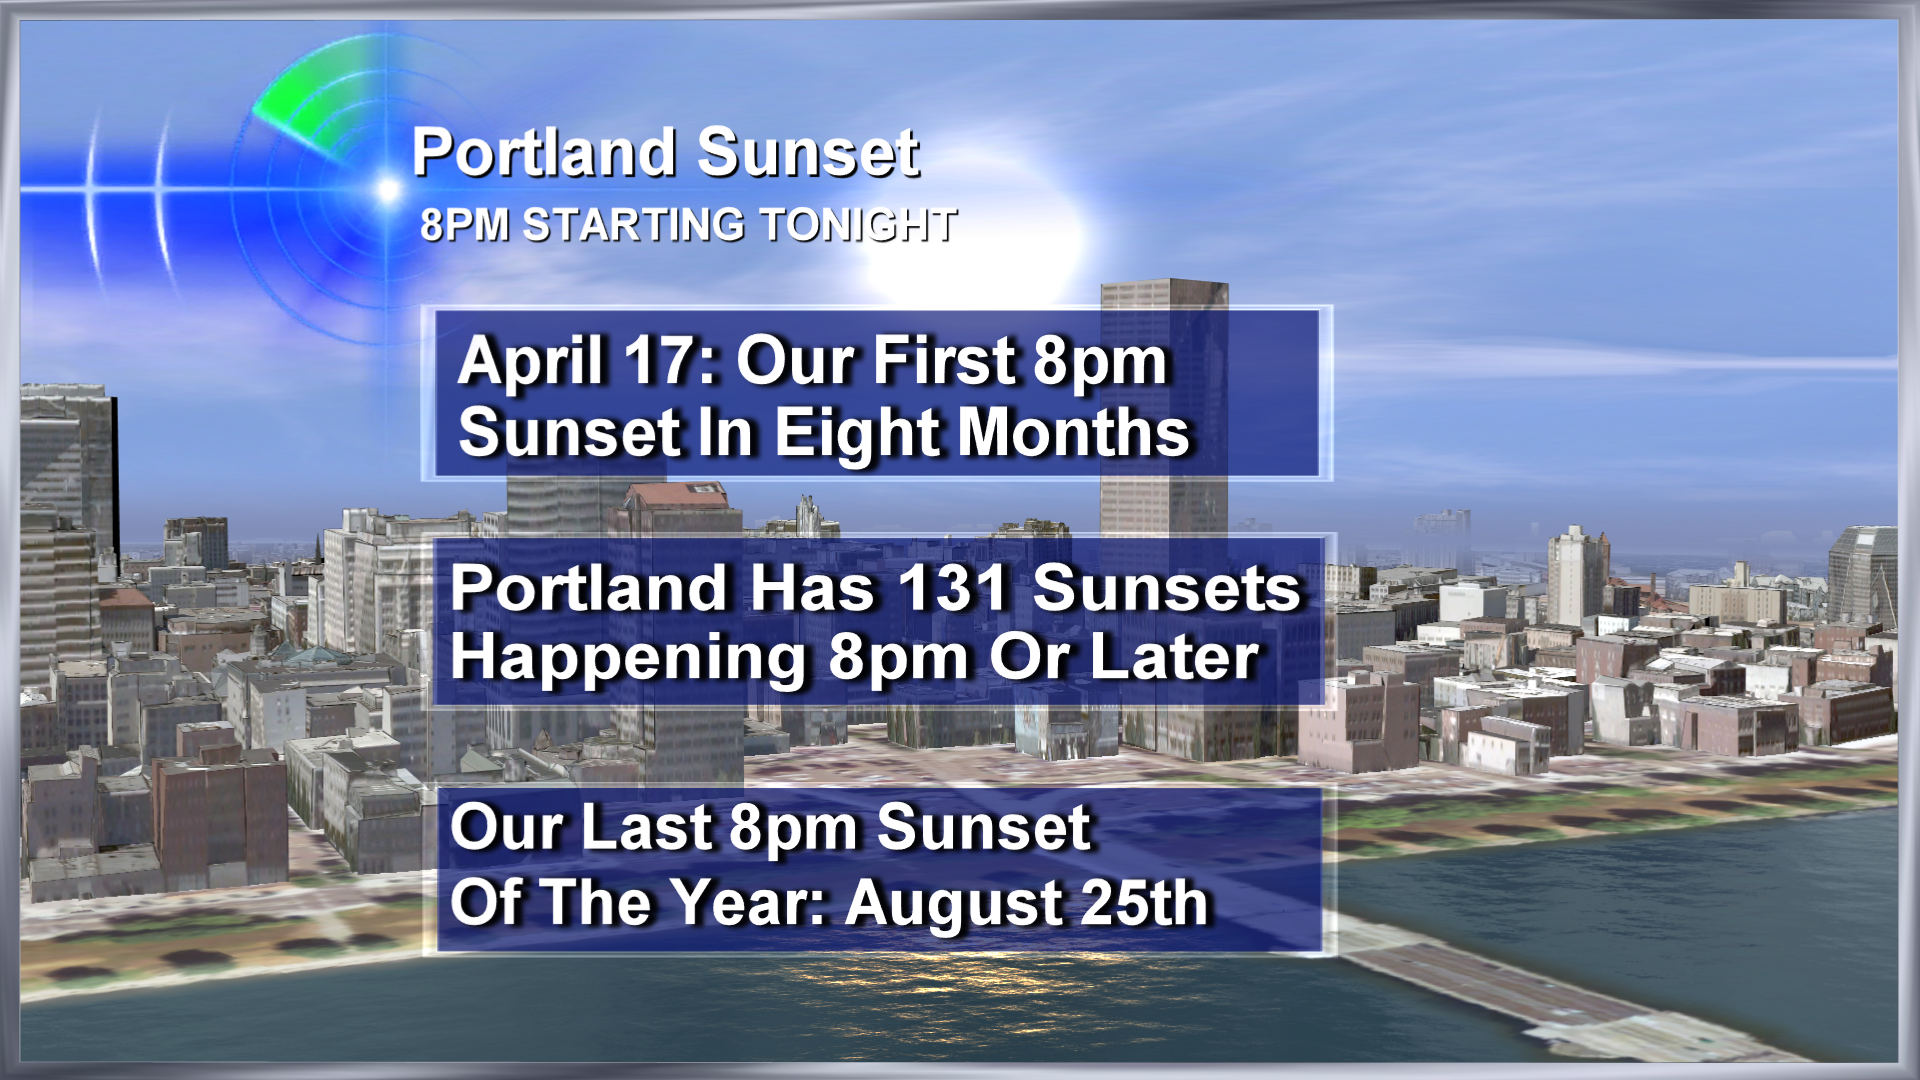 Sunsets Later Than 8pm – How Many We'll Have This Year